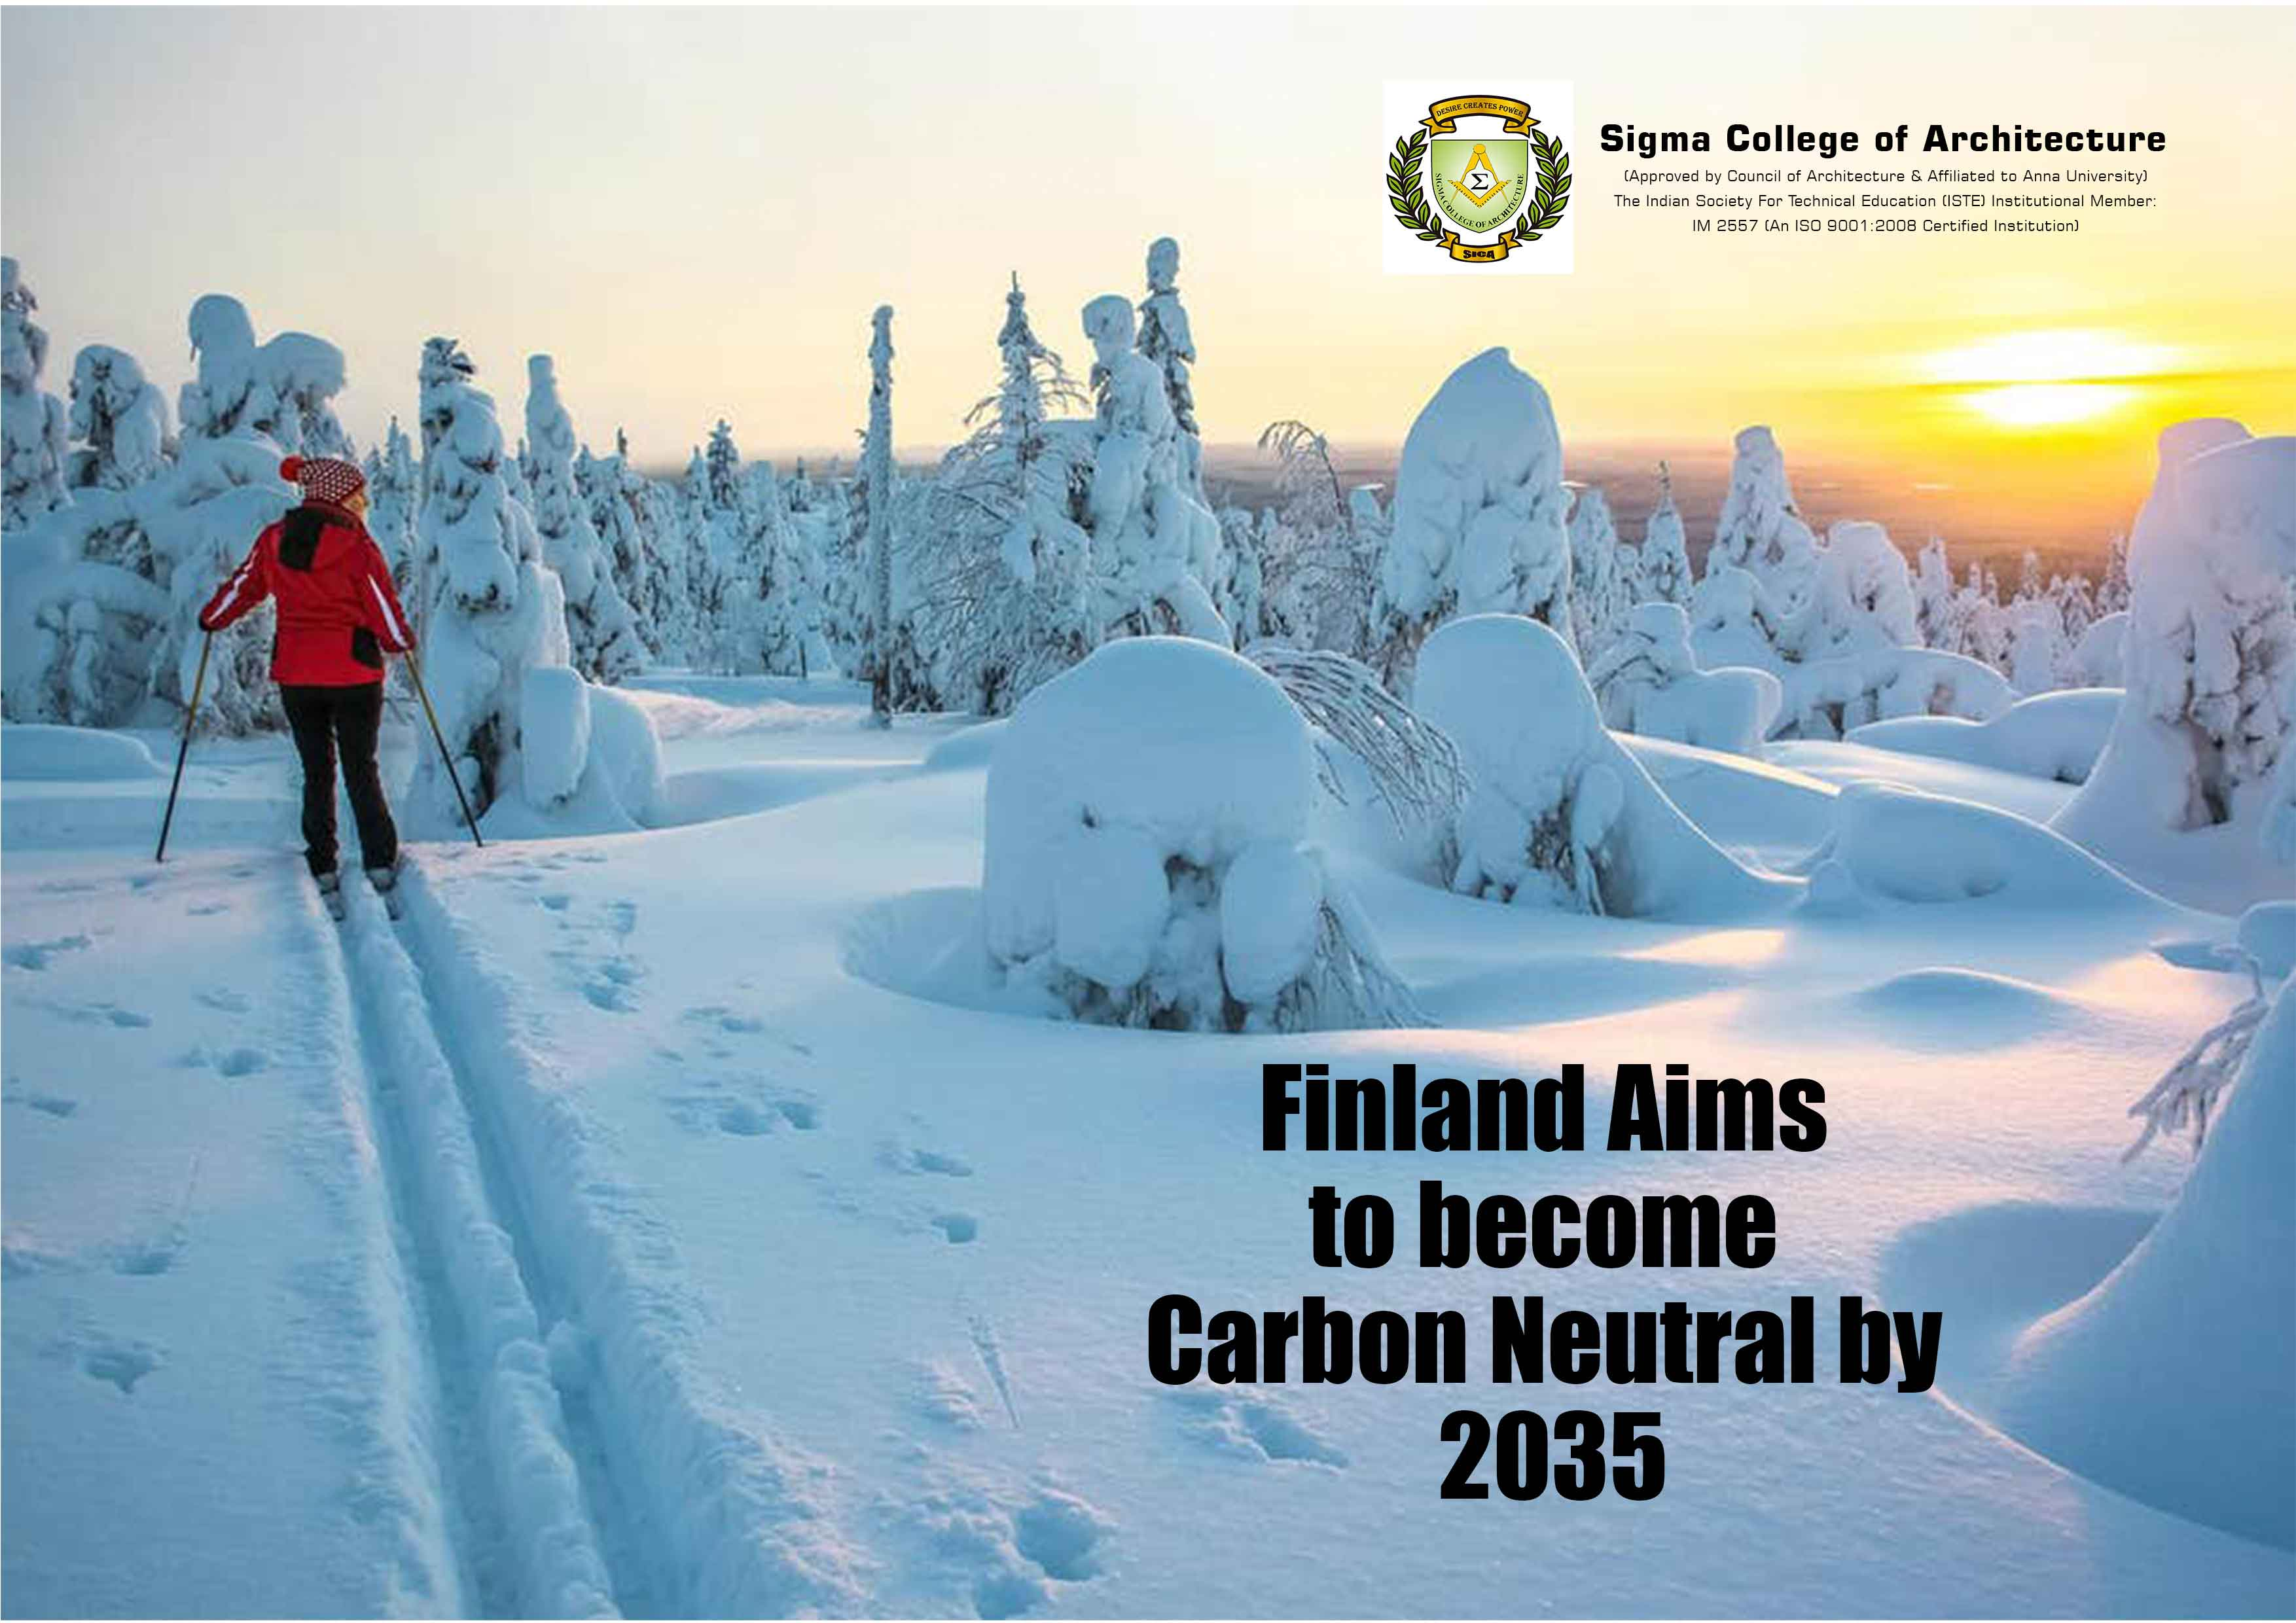 Finland Aims to become Carbon Neutral by 2035